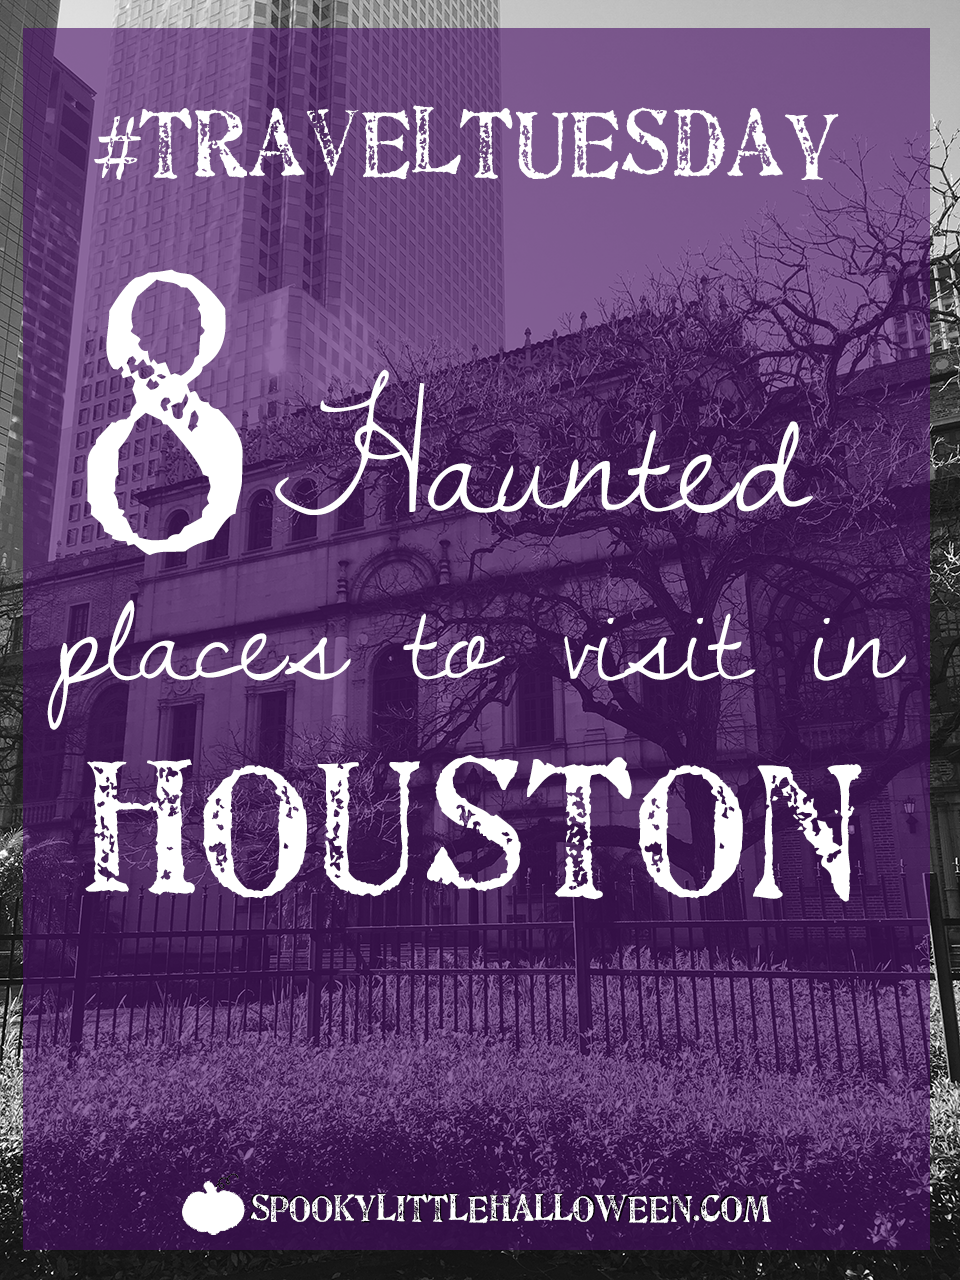 travel-tuesday-8-haunted-places-houston-texas